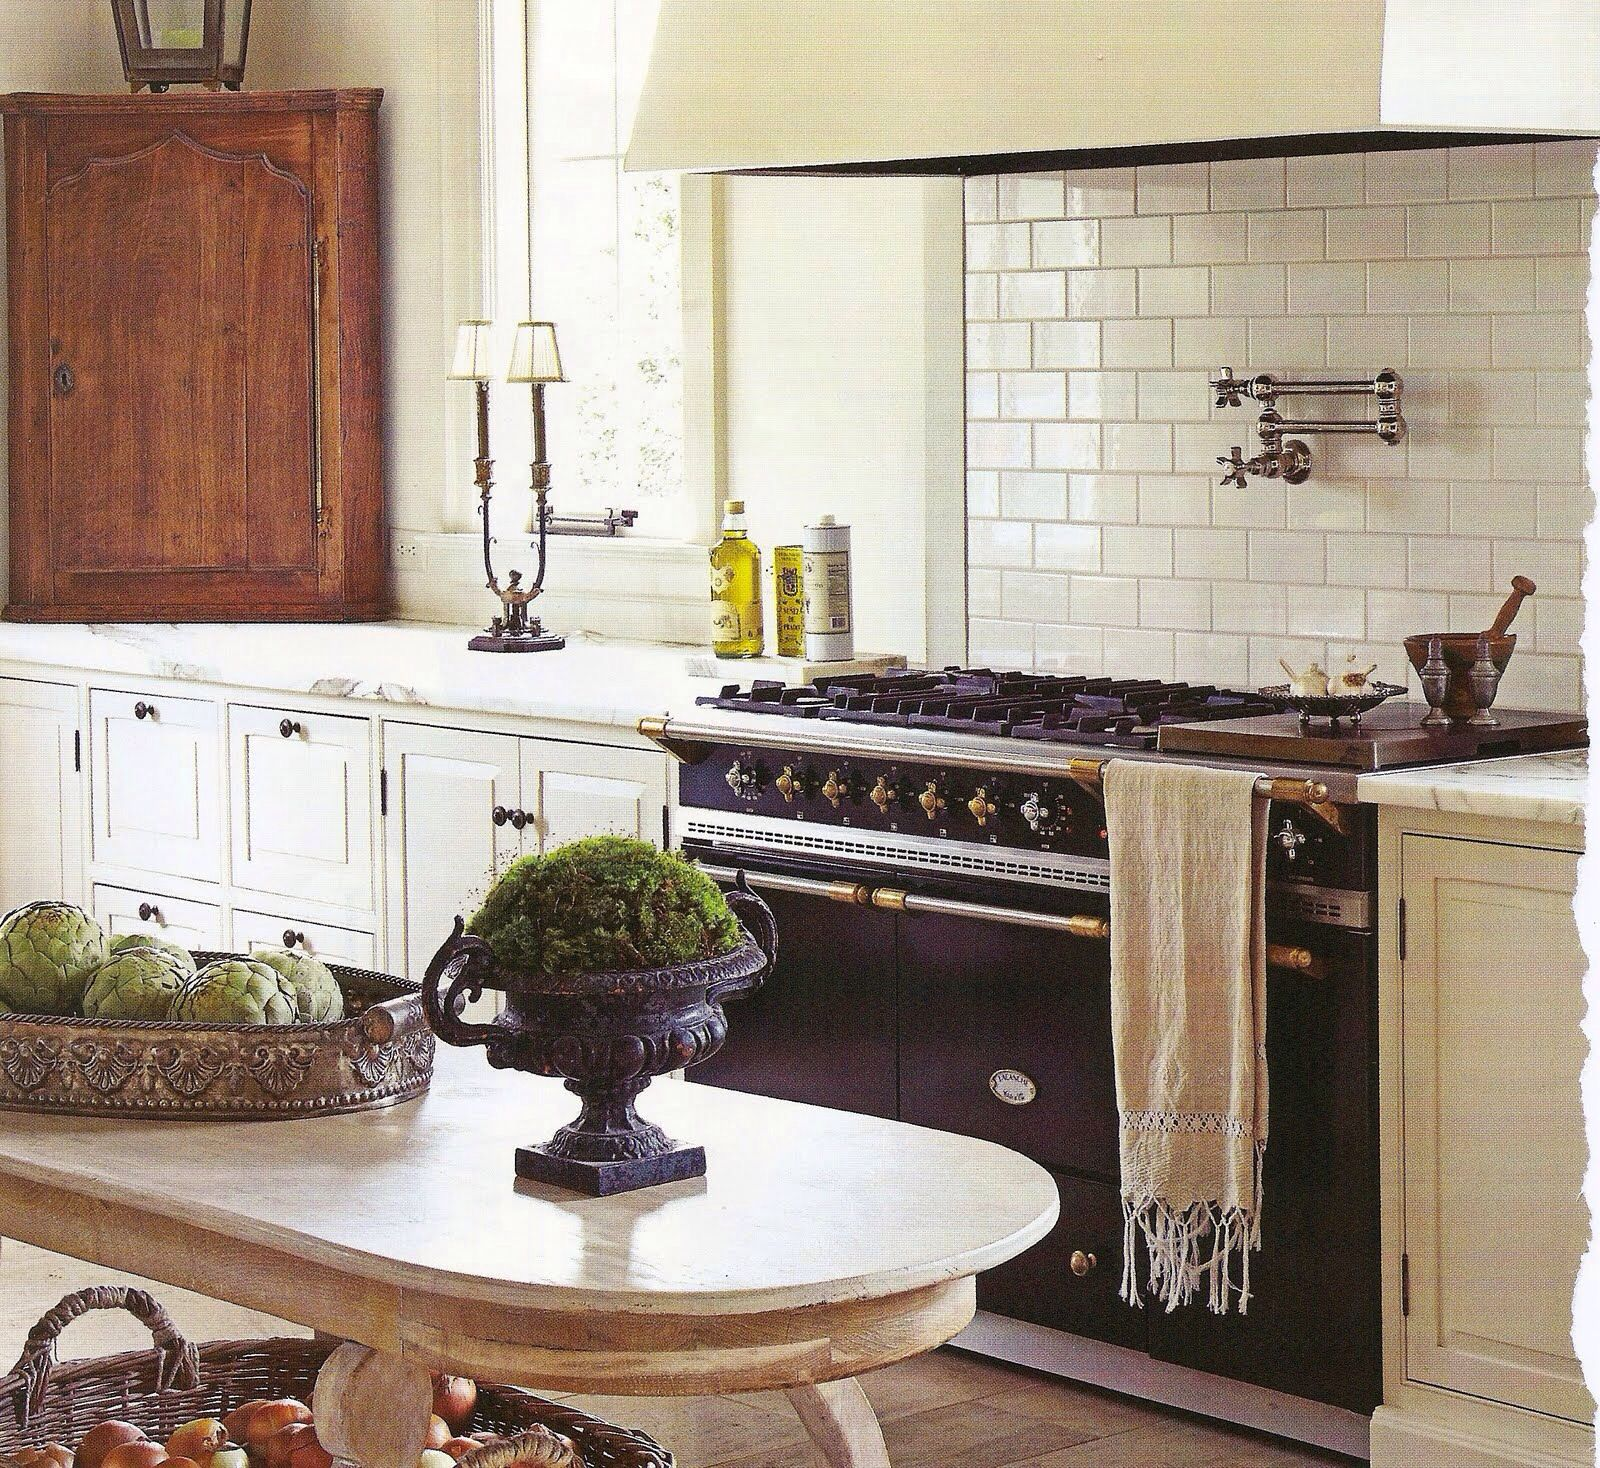 Lacanche range in a charming french kitchen | kitchens | Pinterest ...